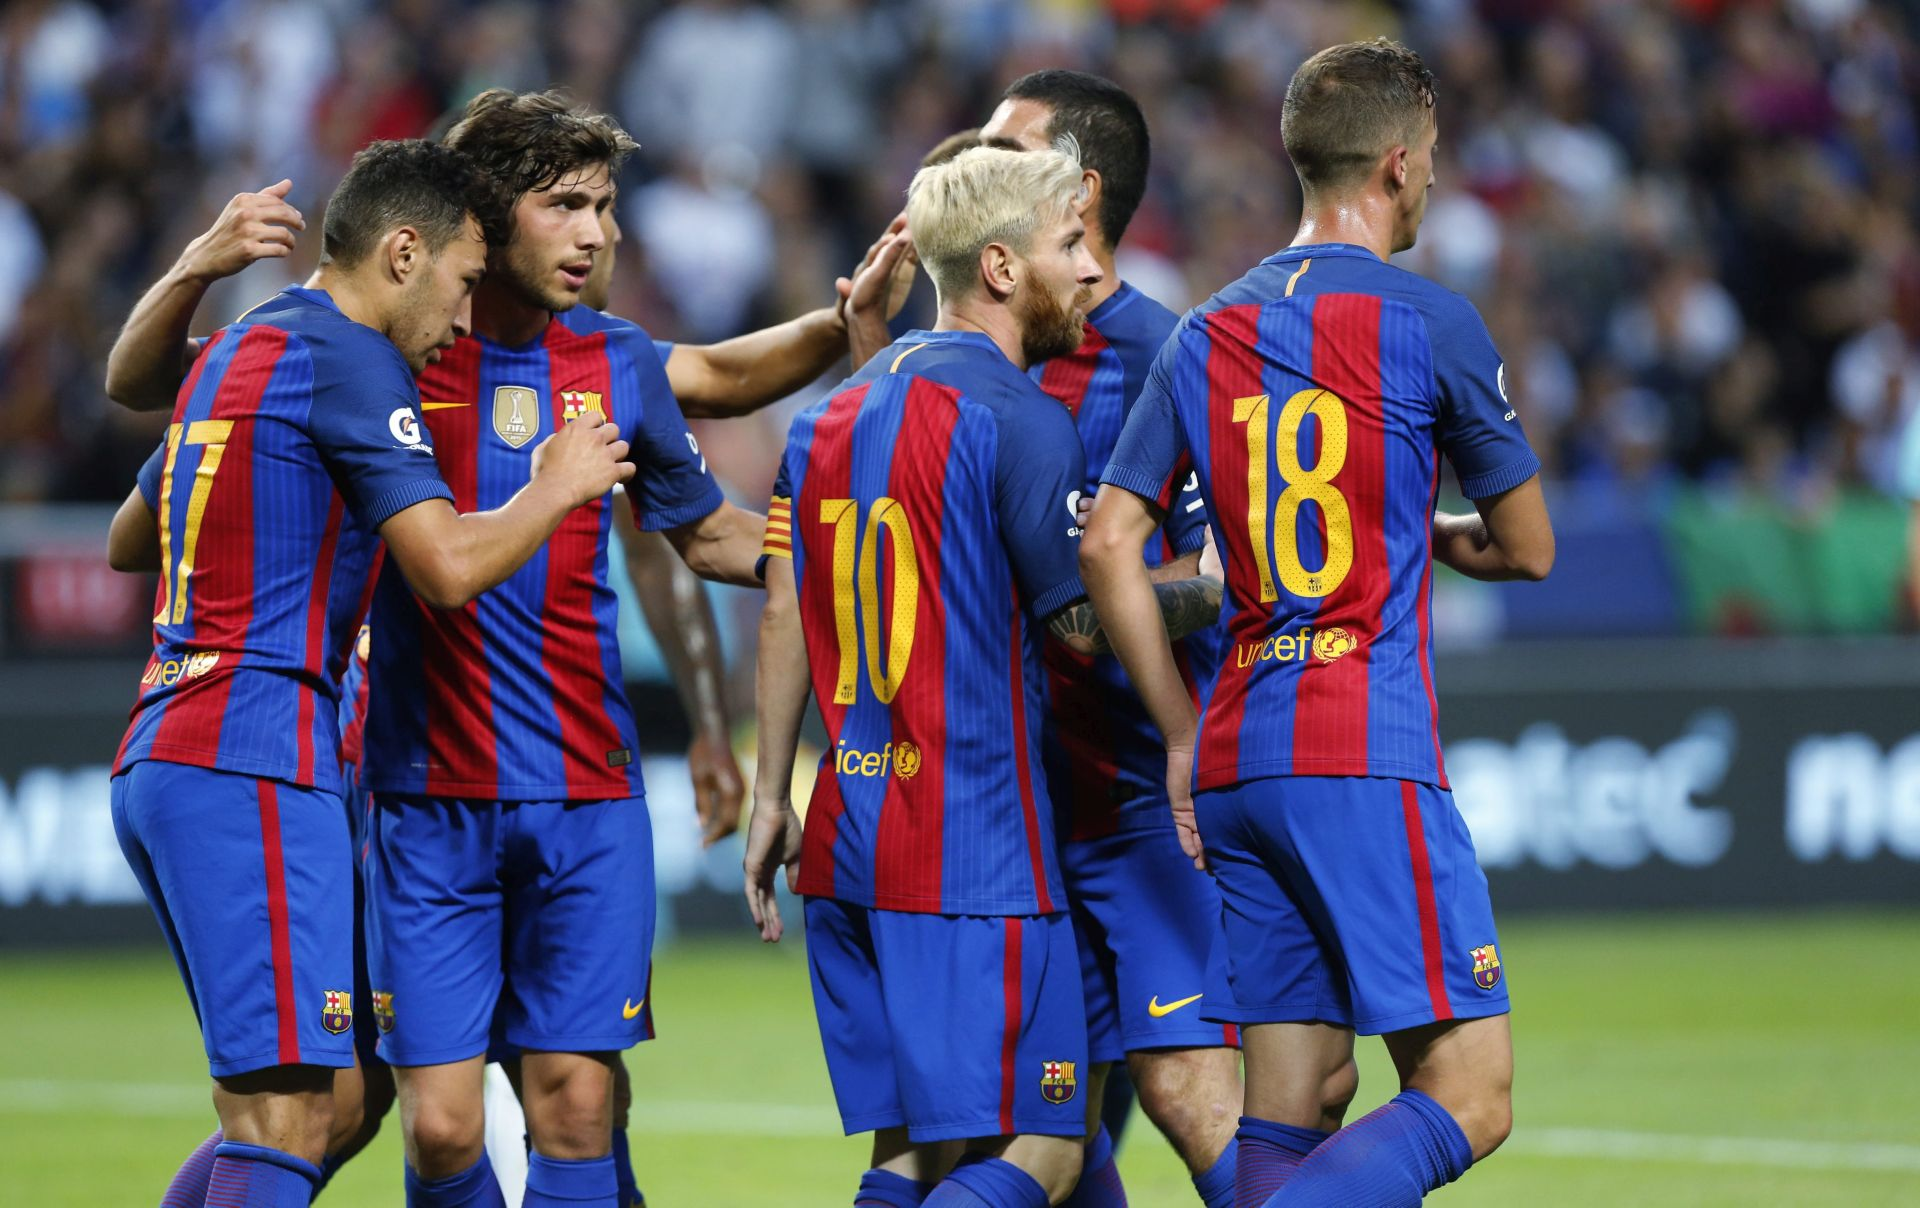 International Champions Cup: Barcelona – Leicester City 4-2